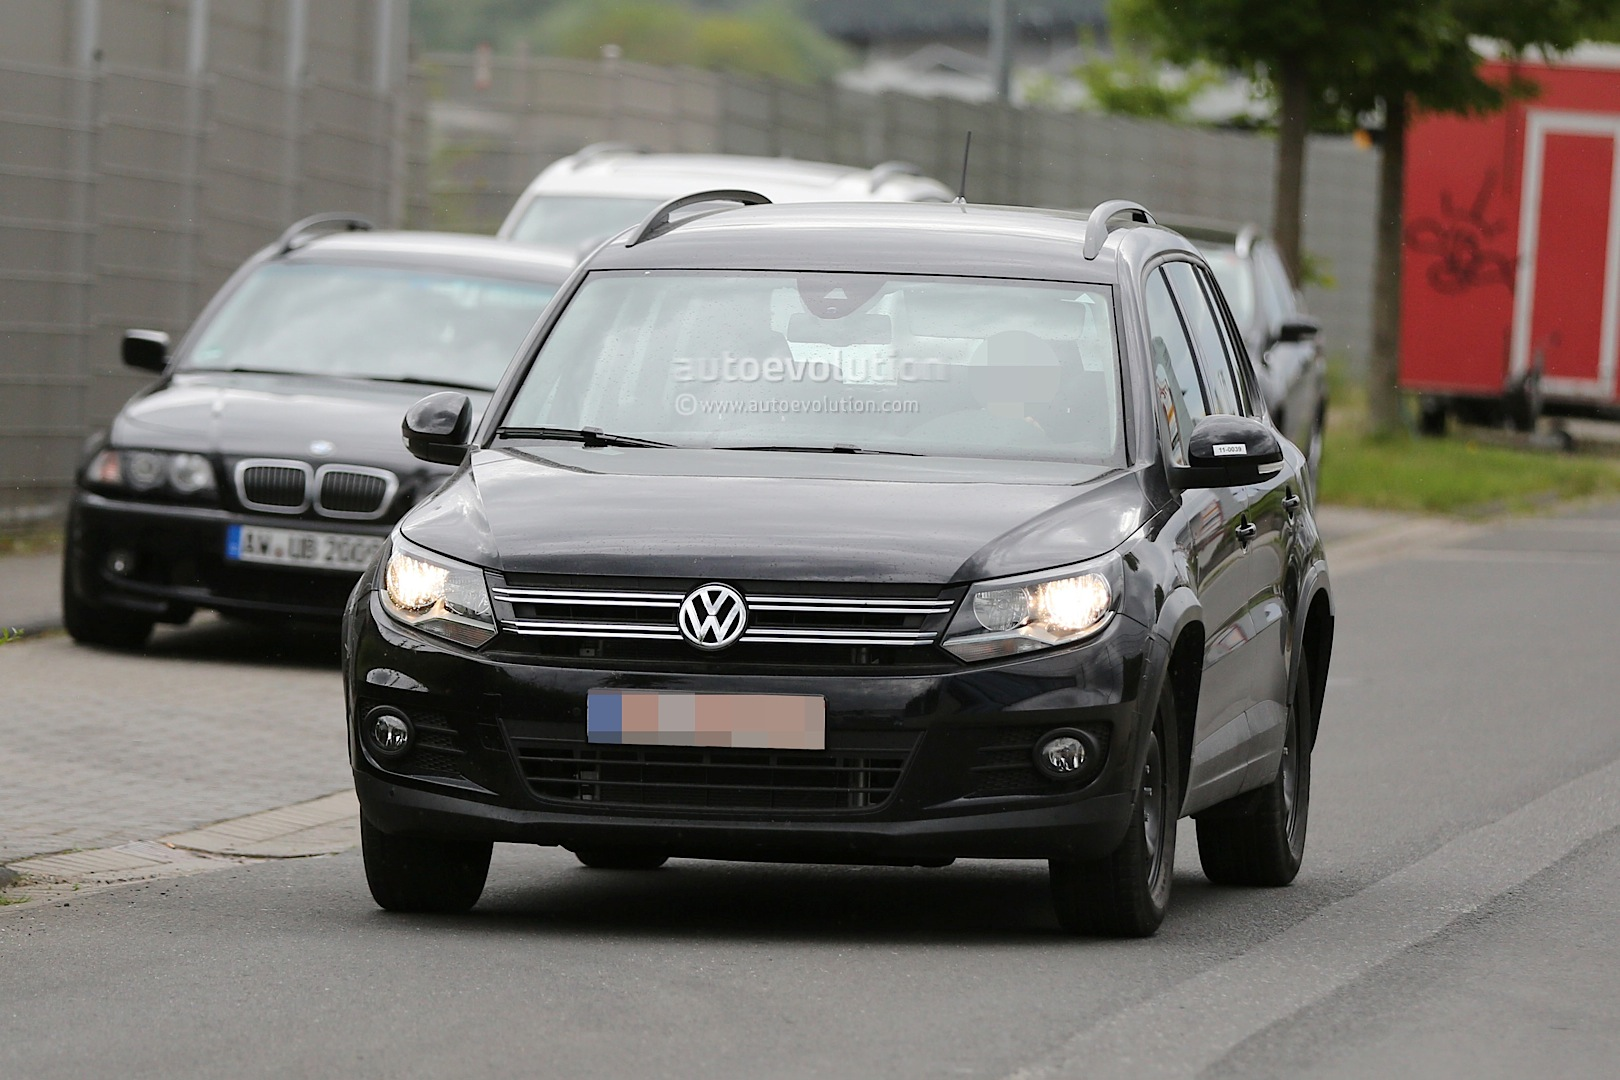 spyshots all new 2015 volkswagen tiguan will be wider autoevolution. Black Bedroom Furniture Sets. Home Design Ideas